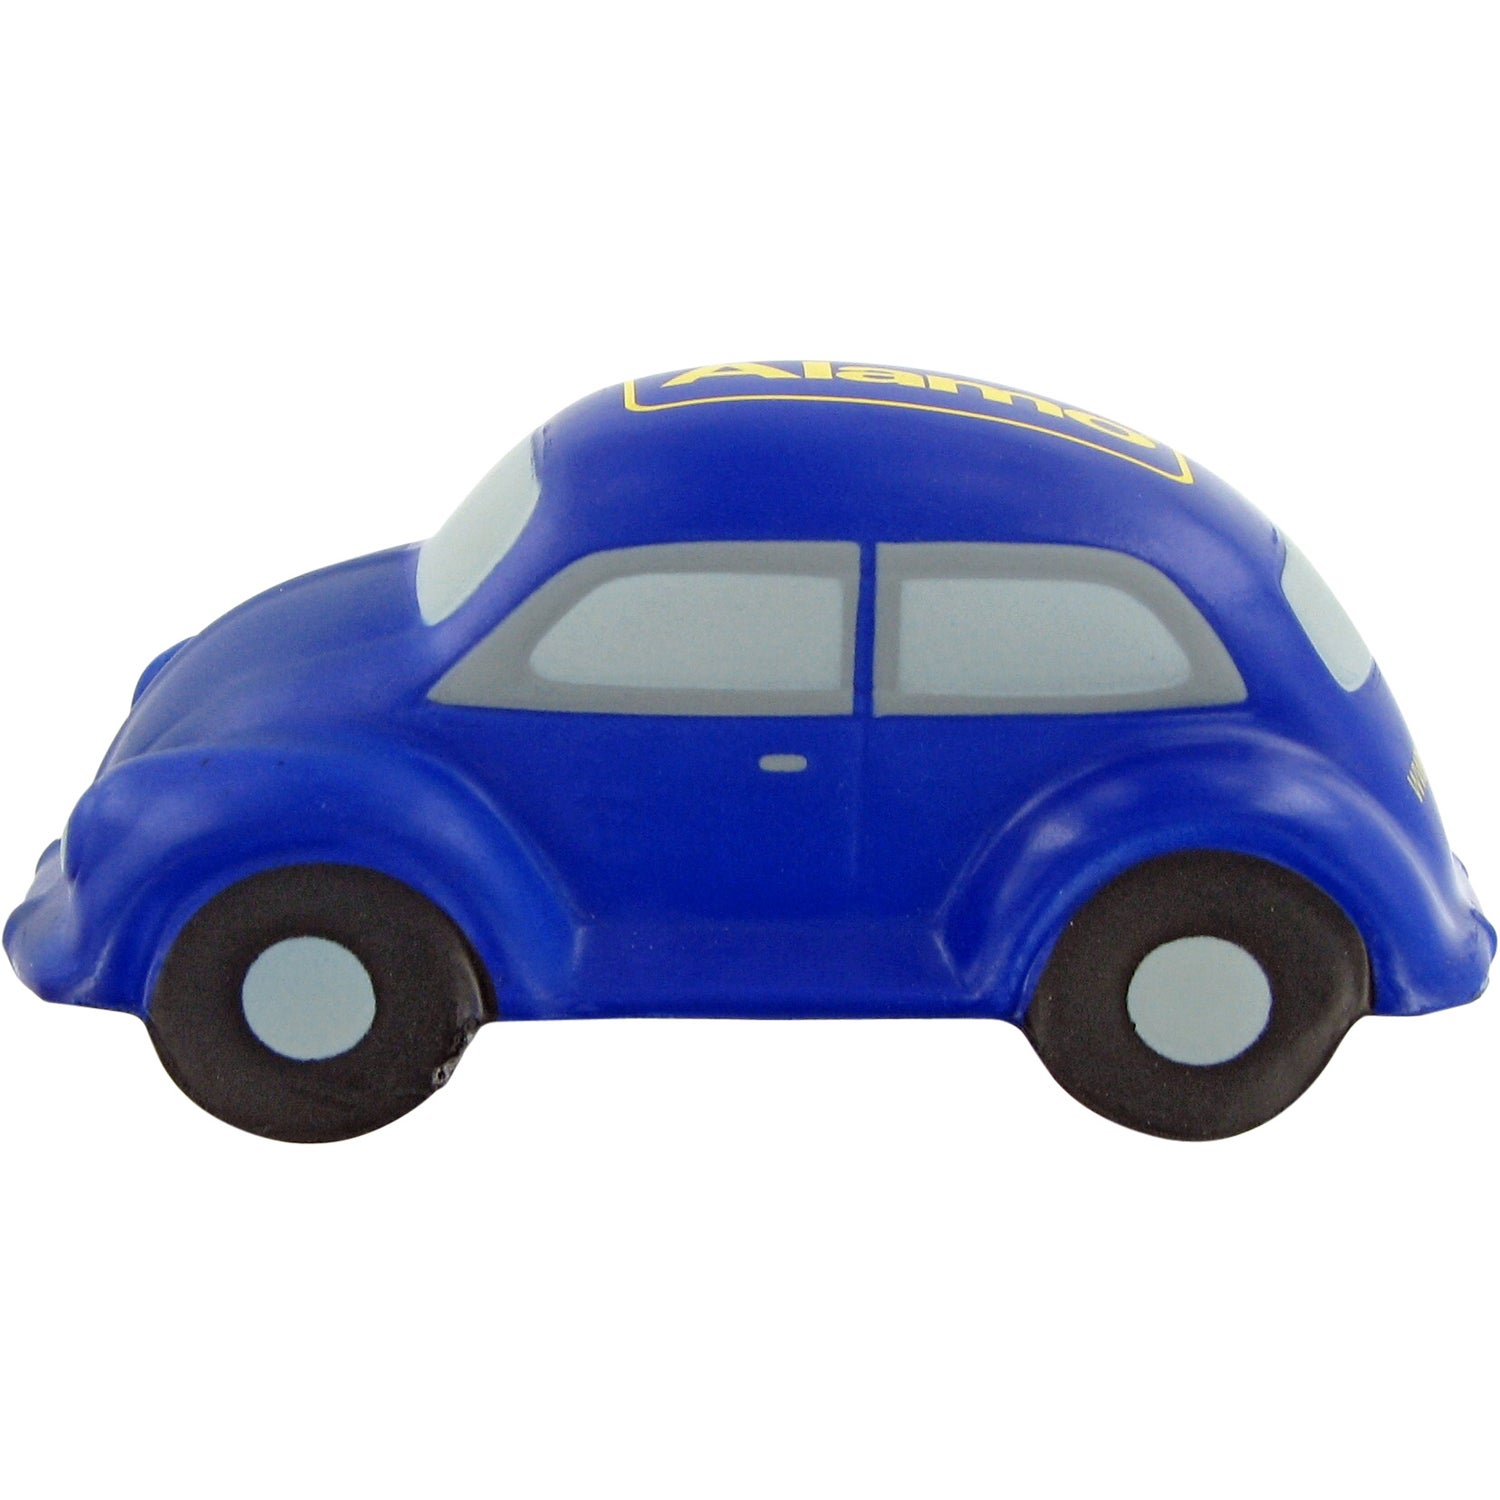 Small Toy Cars : Small car stress toy custom balls ea